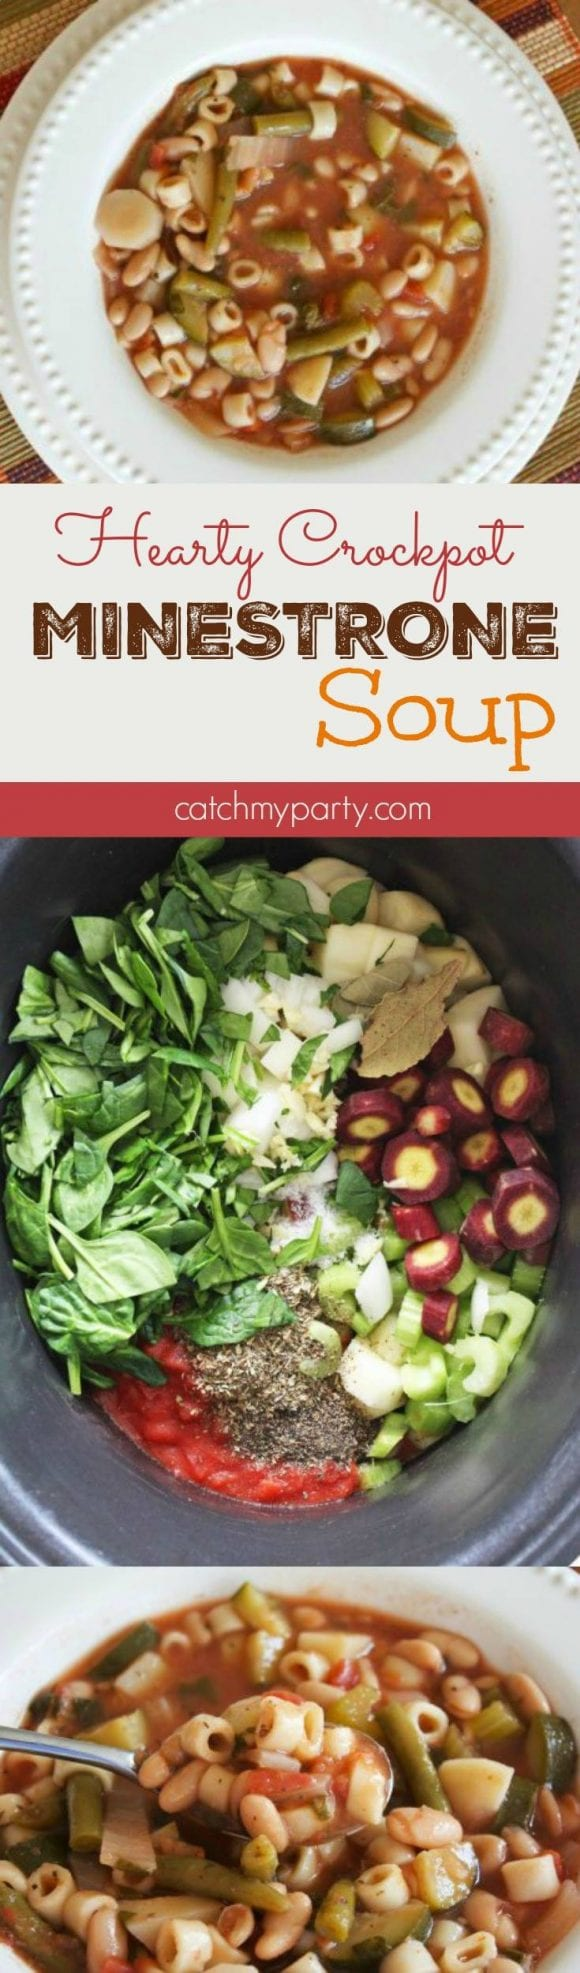 Hearty Crockpot Minestrone Recipe | CatchMyParty.com